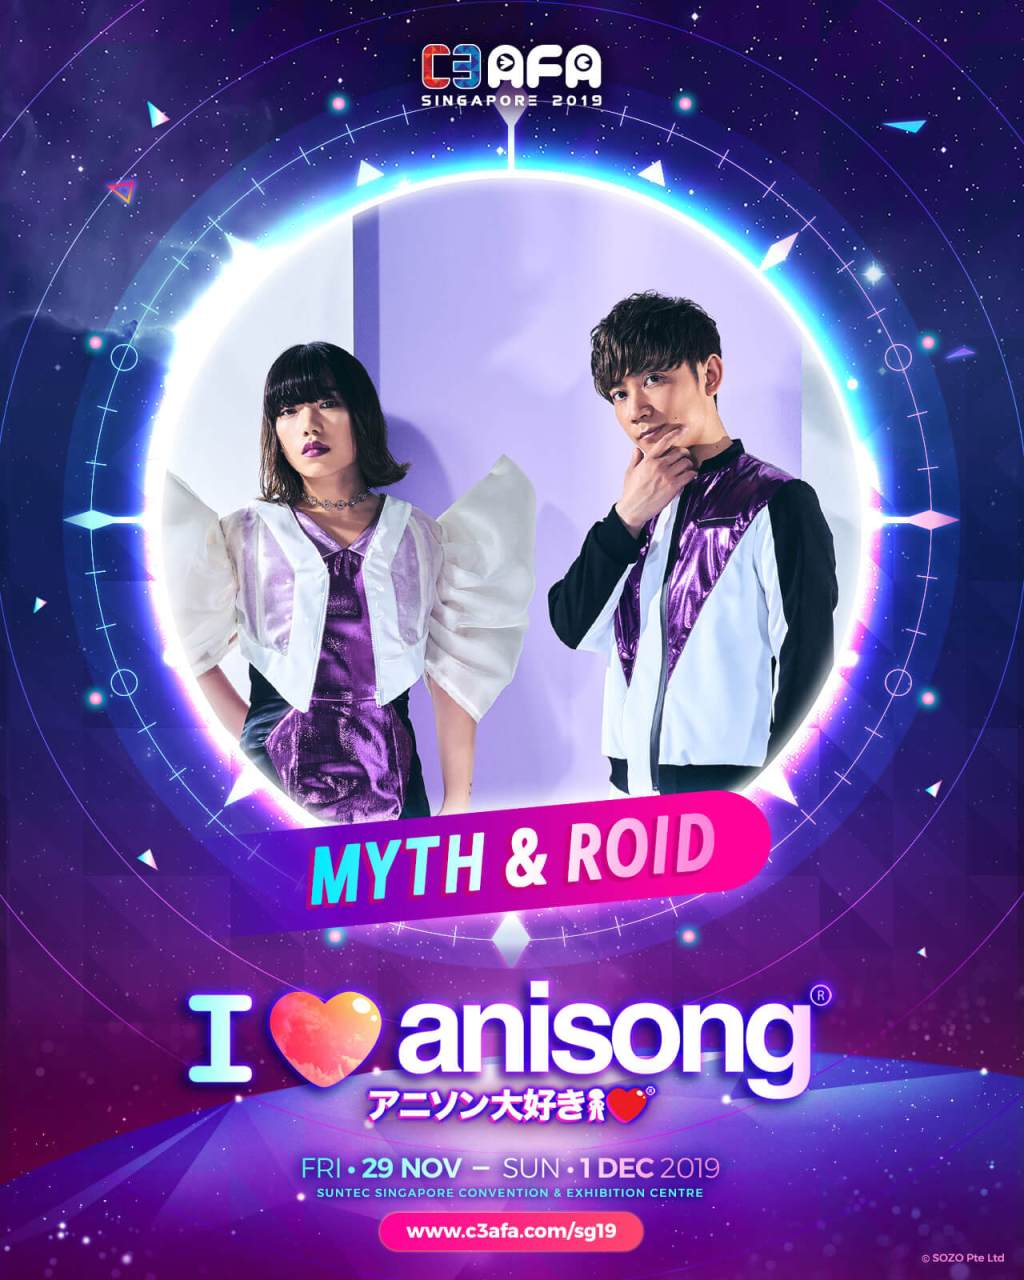 [SO JAPAN x C3AFA Singapore] An Exclusive Q&A with Myth & Roid